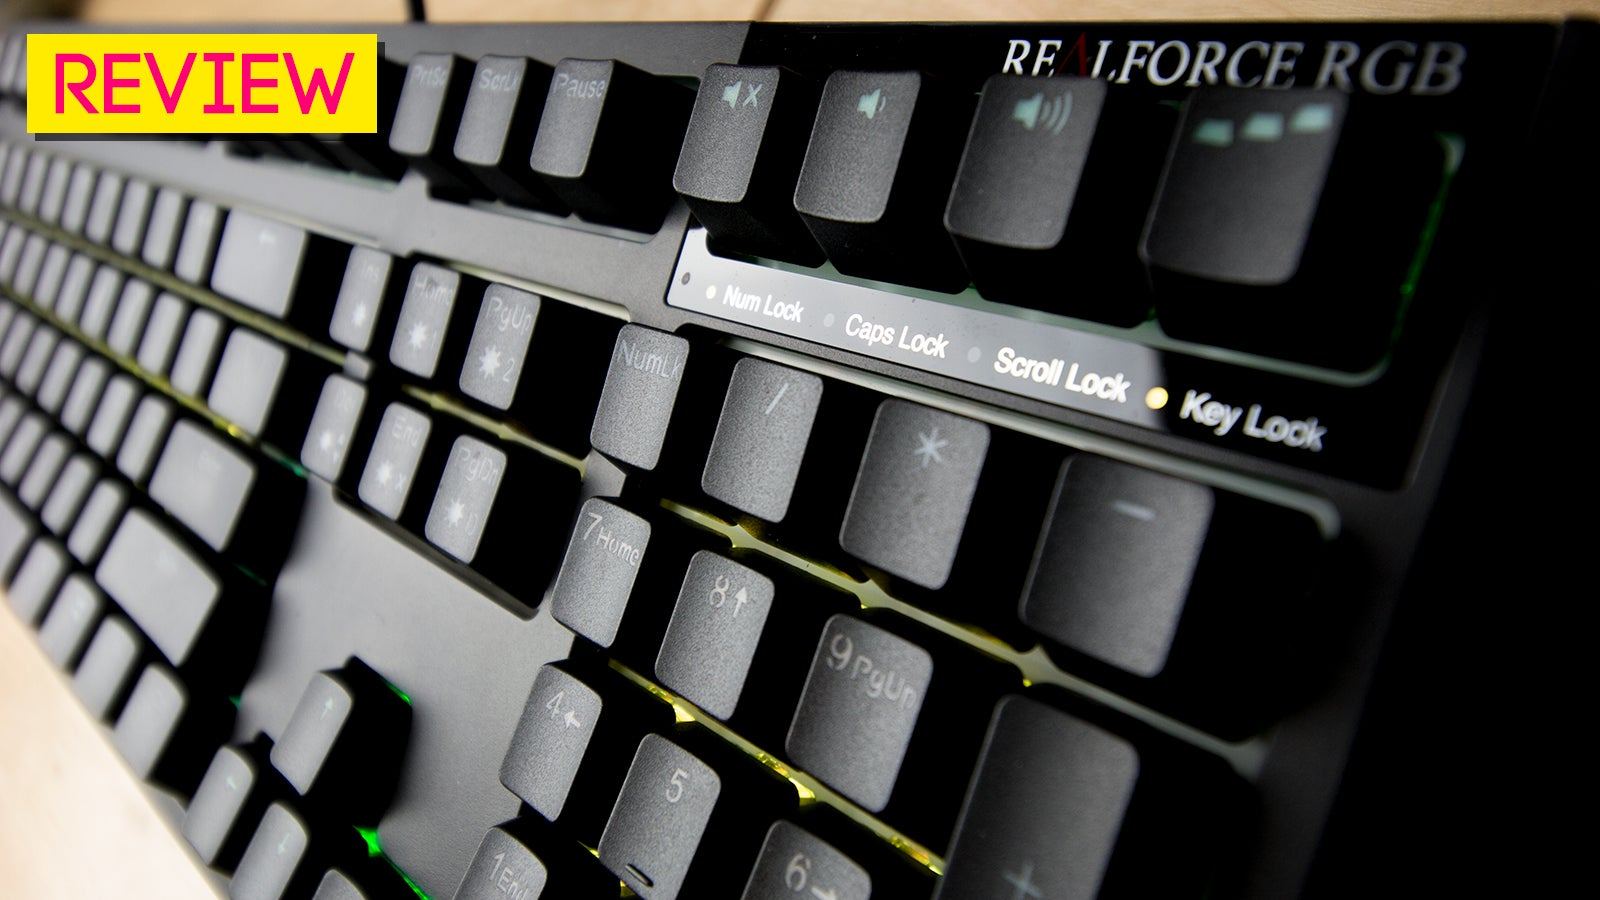 Topre Realforce RGB Keyboard Review: Life Beyond The Rubber Dome